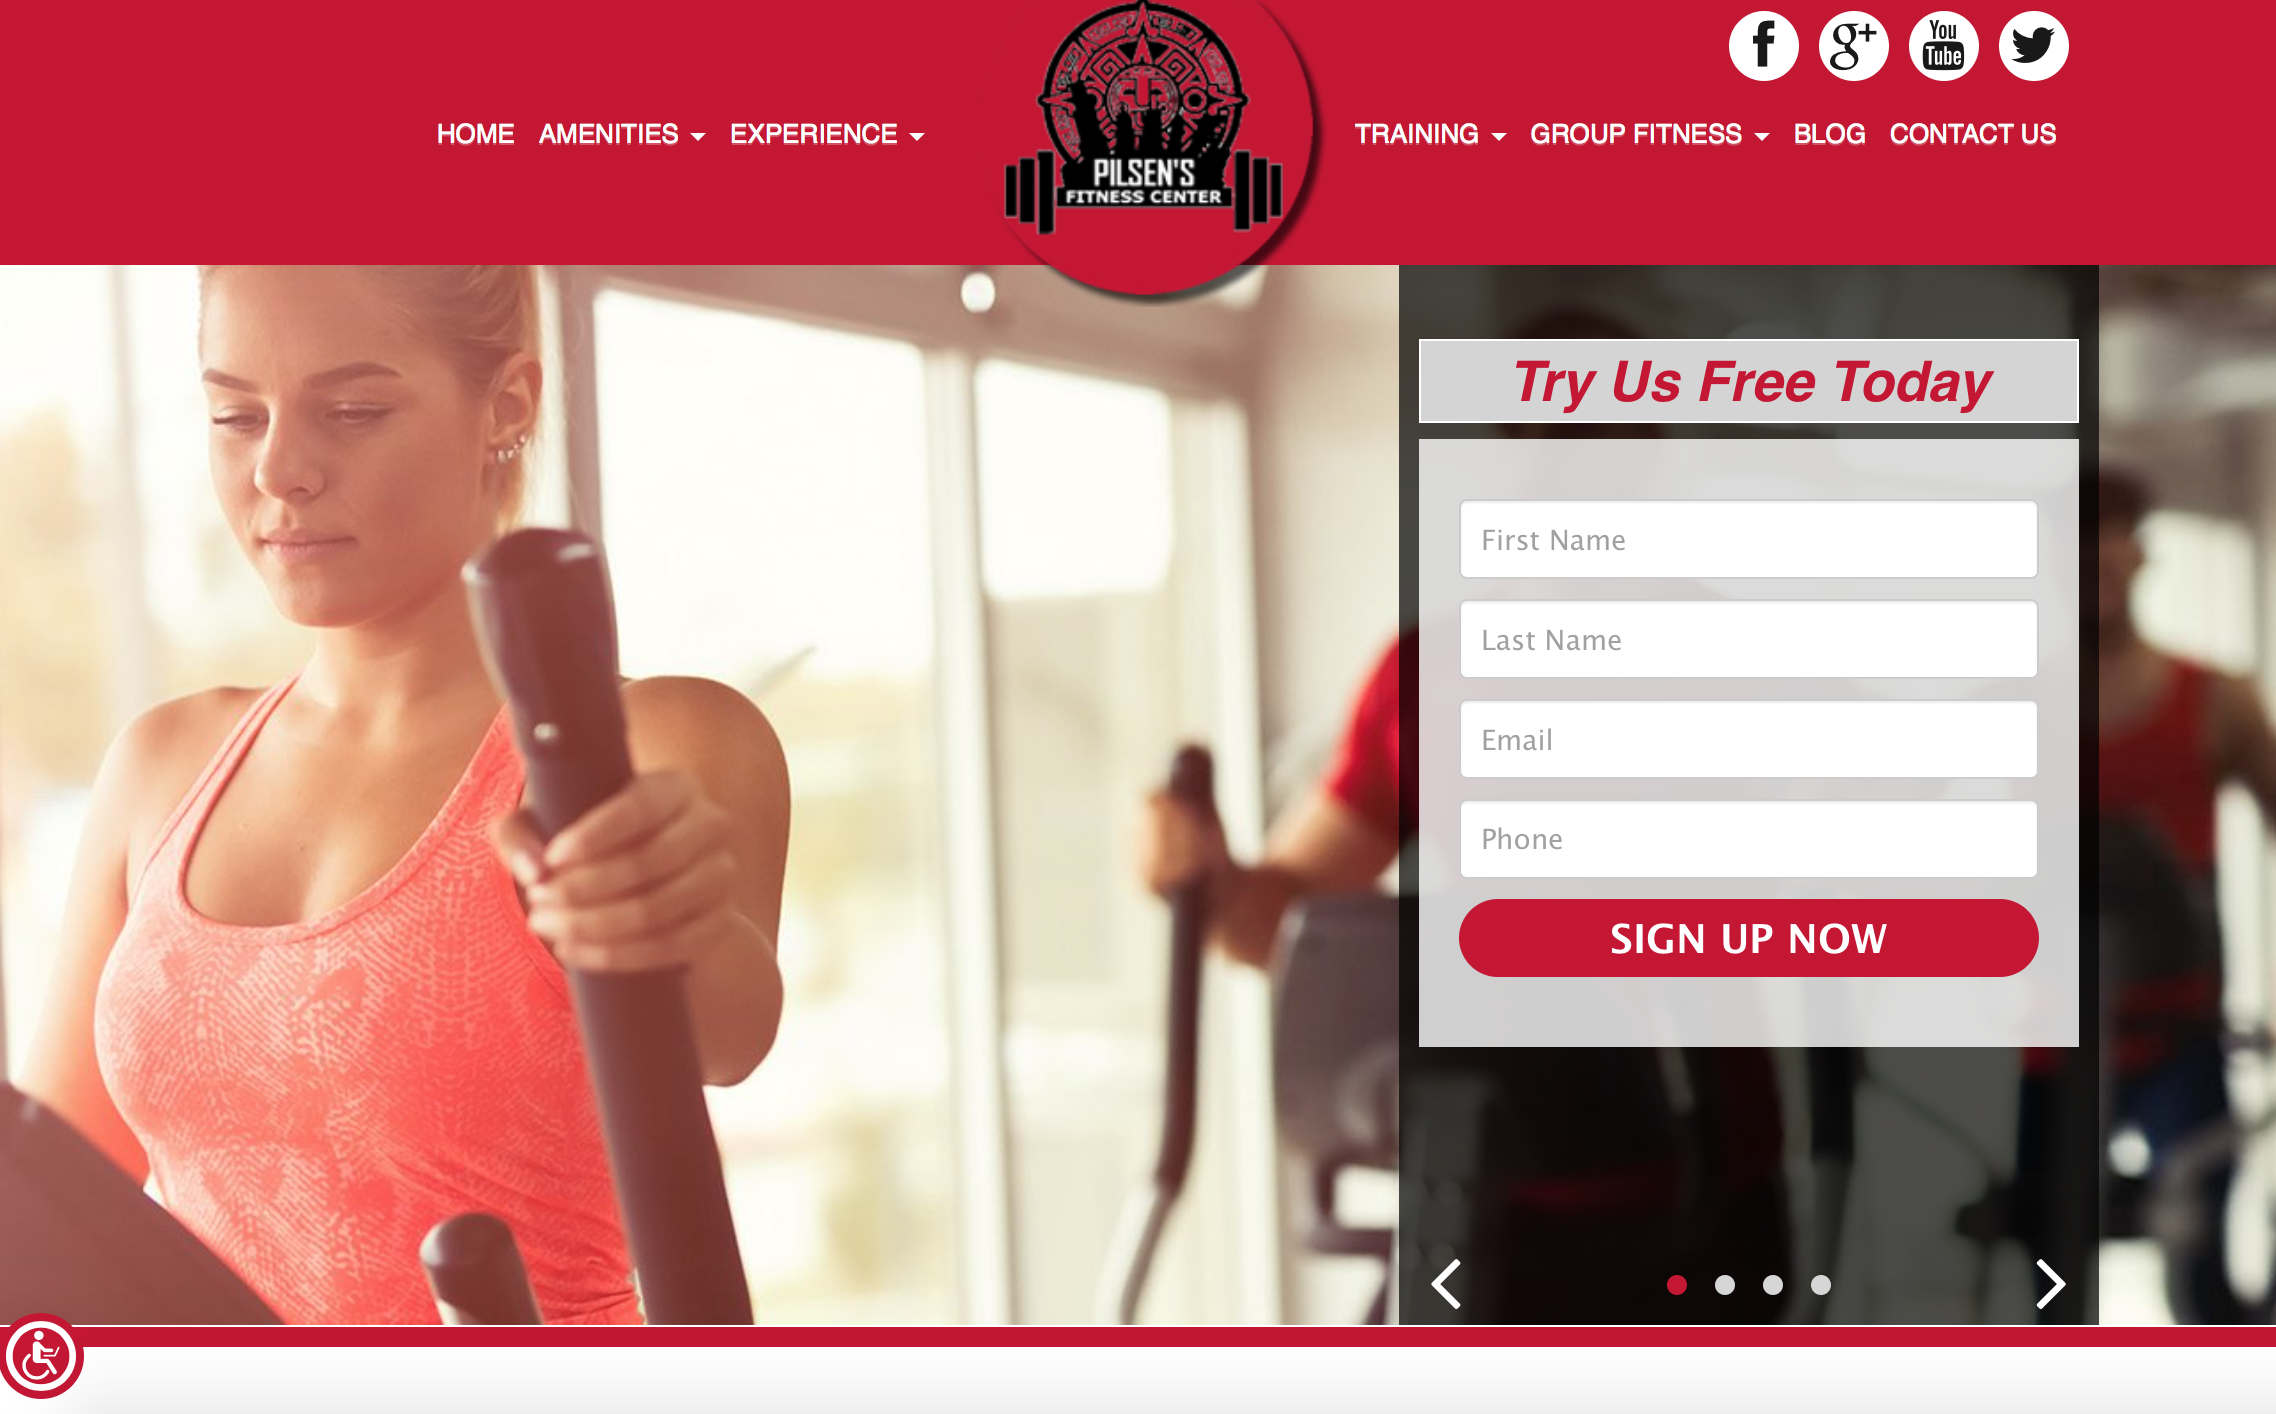 Pilsen Fitness Center best gym website